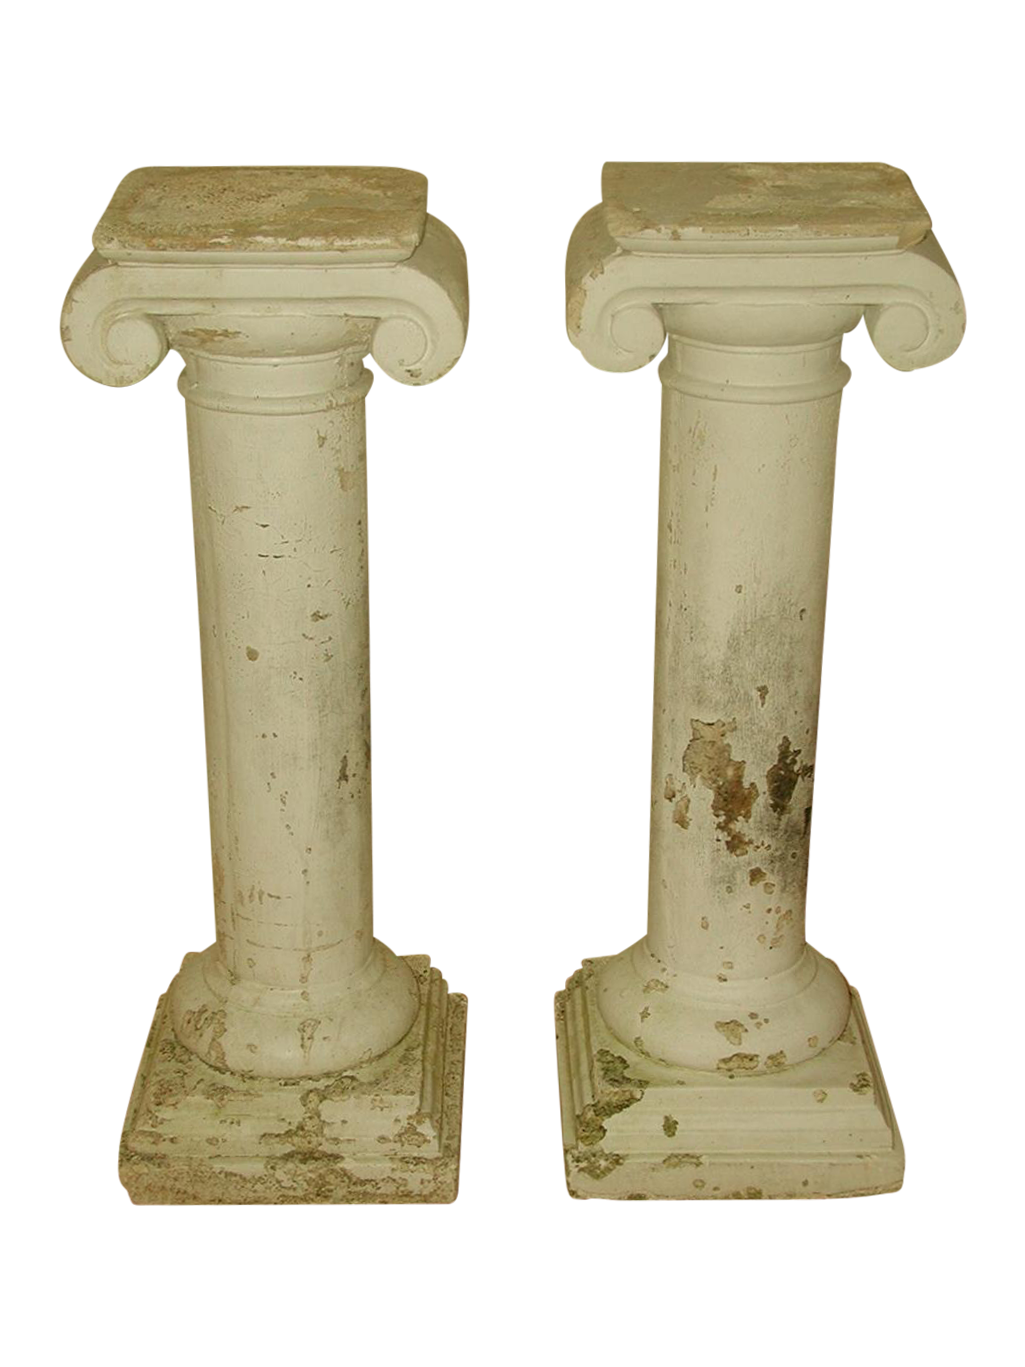 Architectural Plaster Column Table Bases a Pair Chairish : e2cb5105 6338 456b 88de 363b65f8c4d4 from www.chairish.com size 1025 x 1367 png 837kB